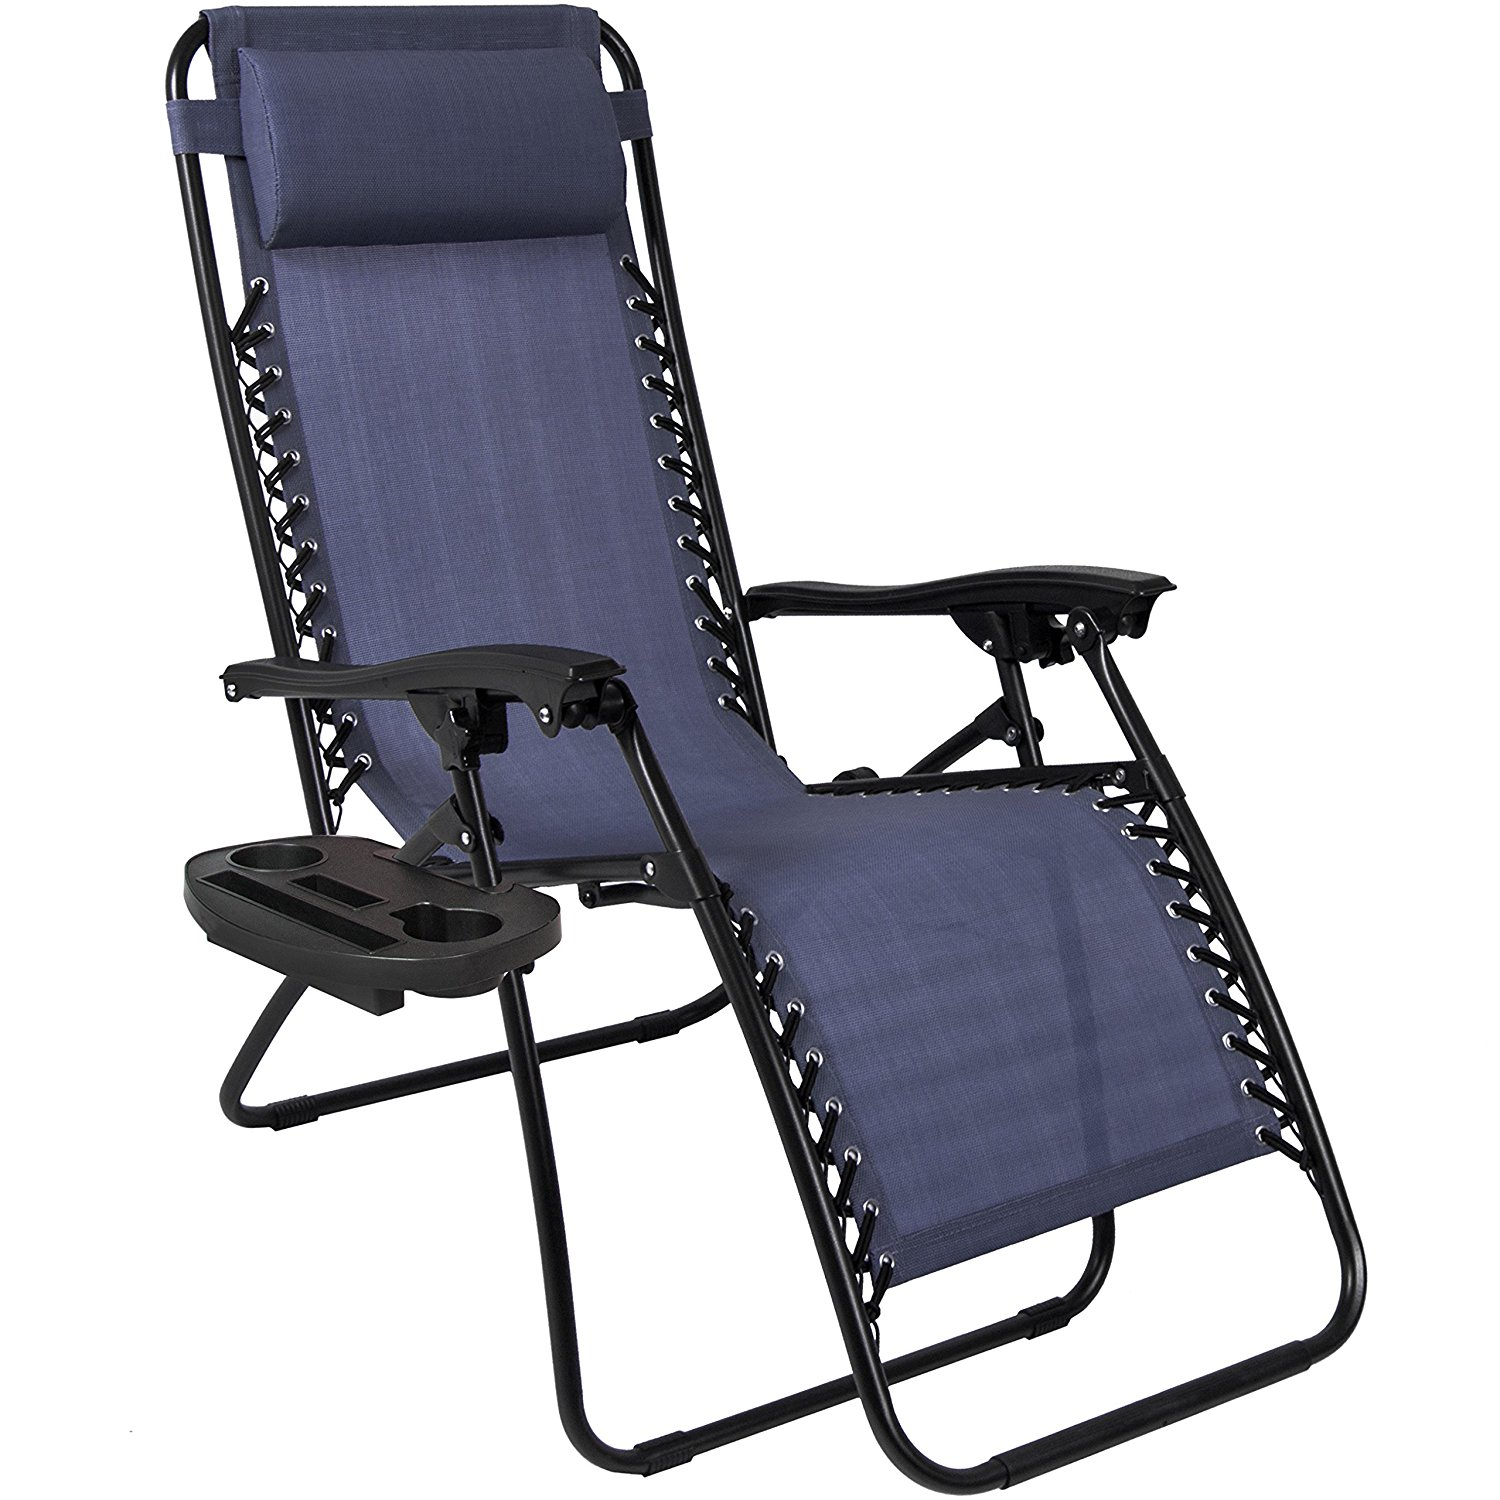 Wholesale Outdoor Adjustable Pool Beach Chaise Lounger Chairs Folding Chair Bed Reclining Chairs